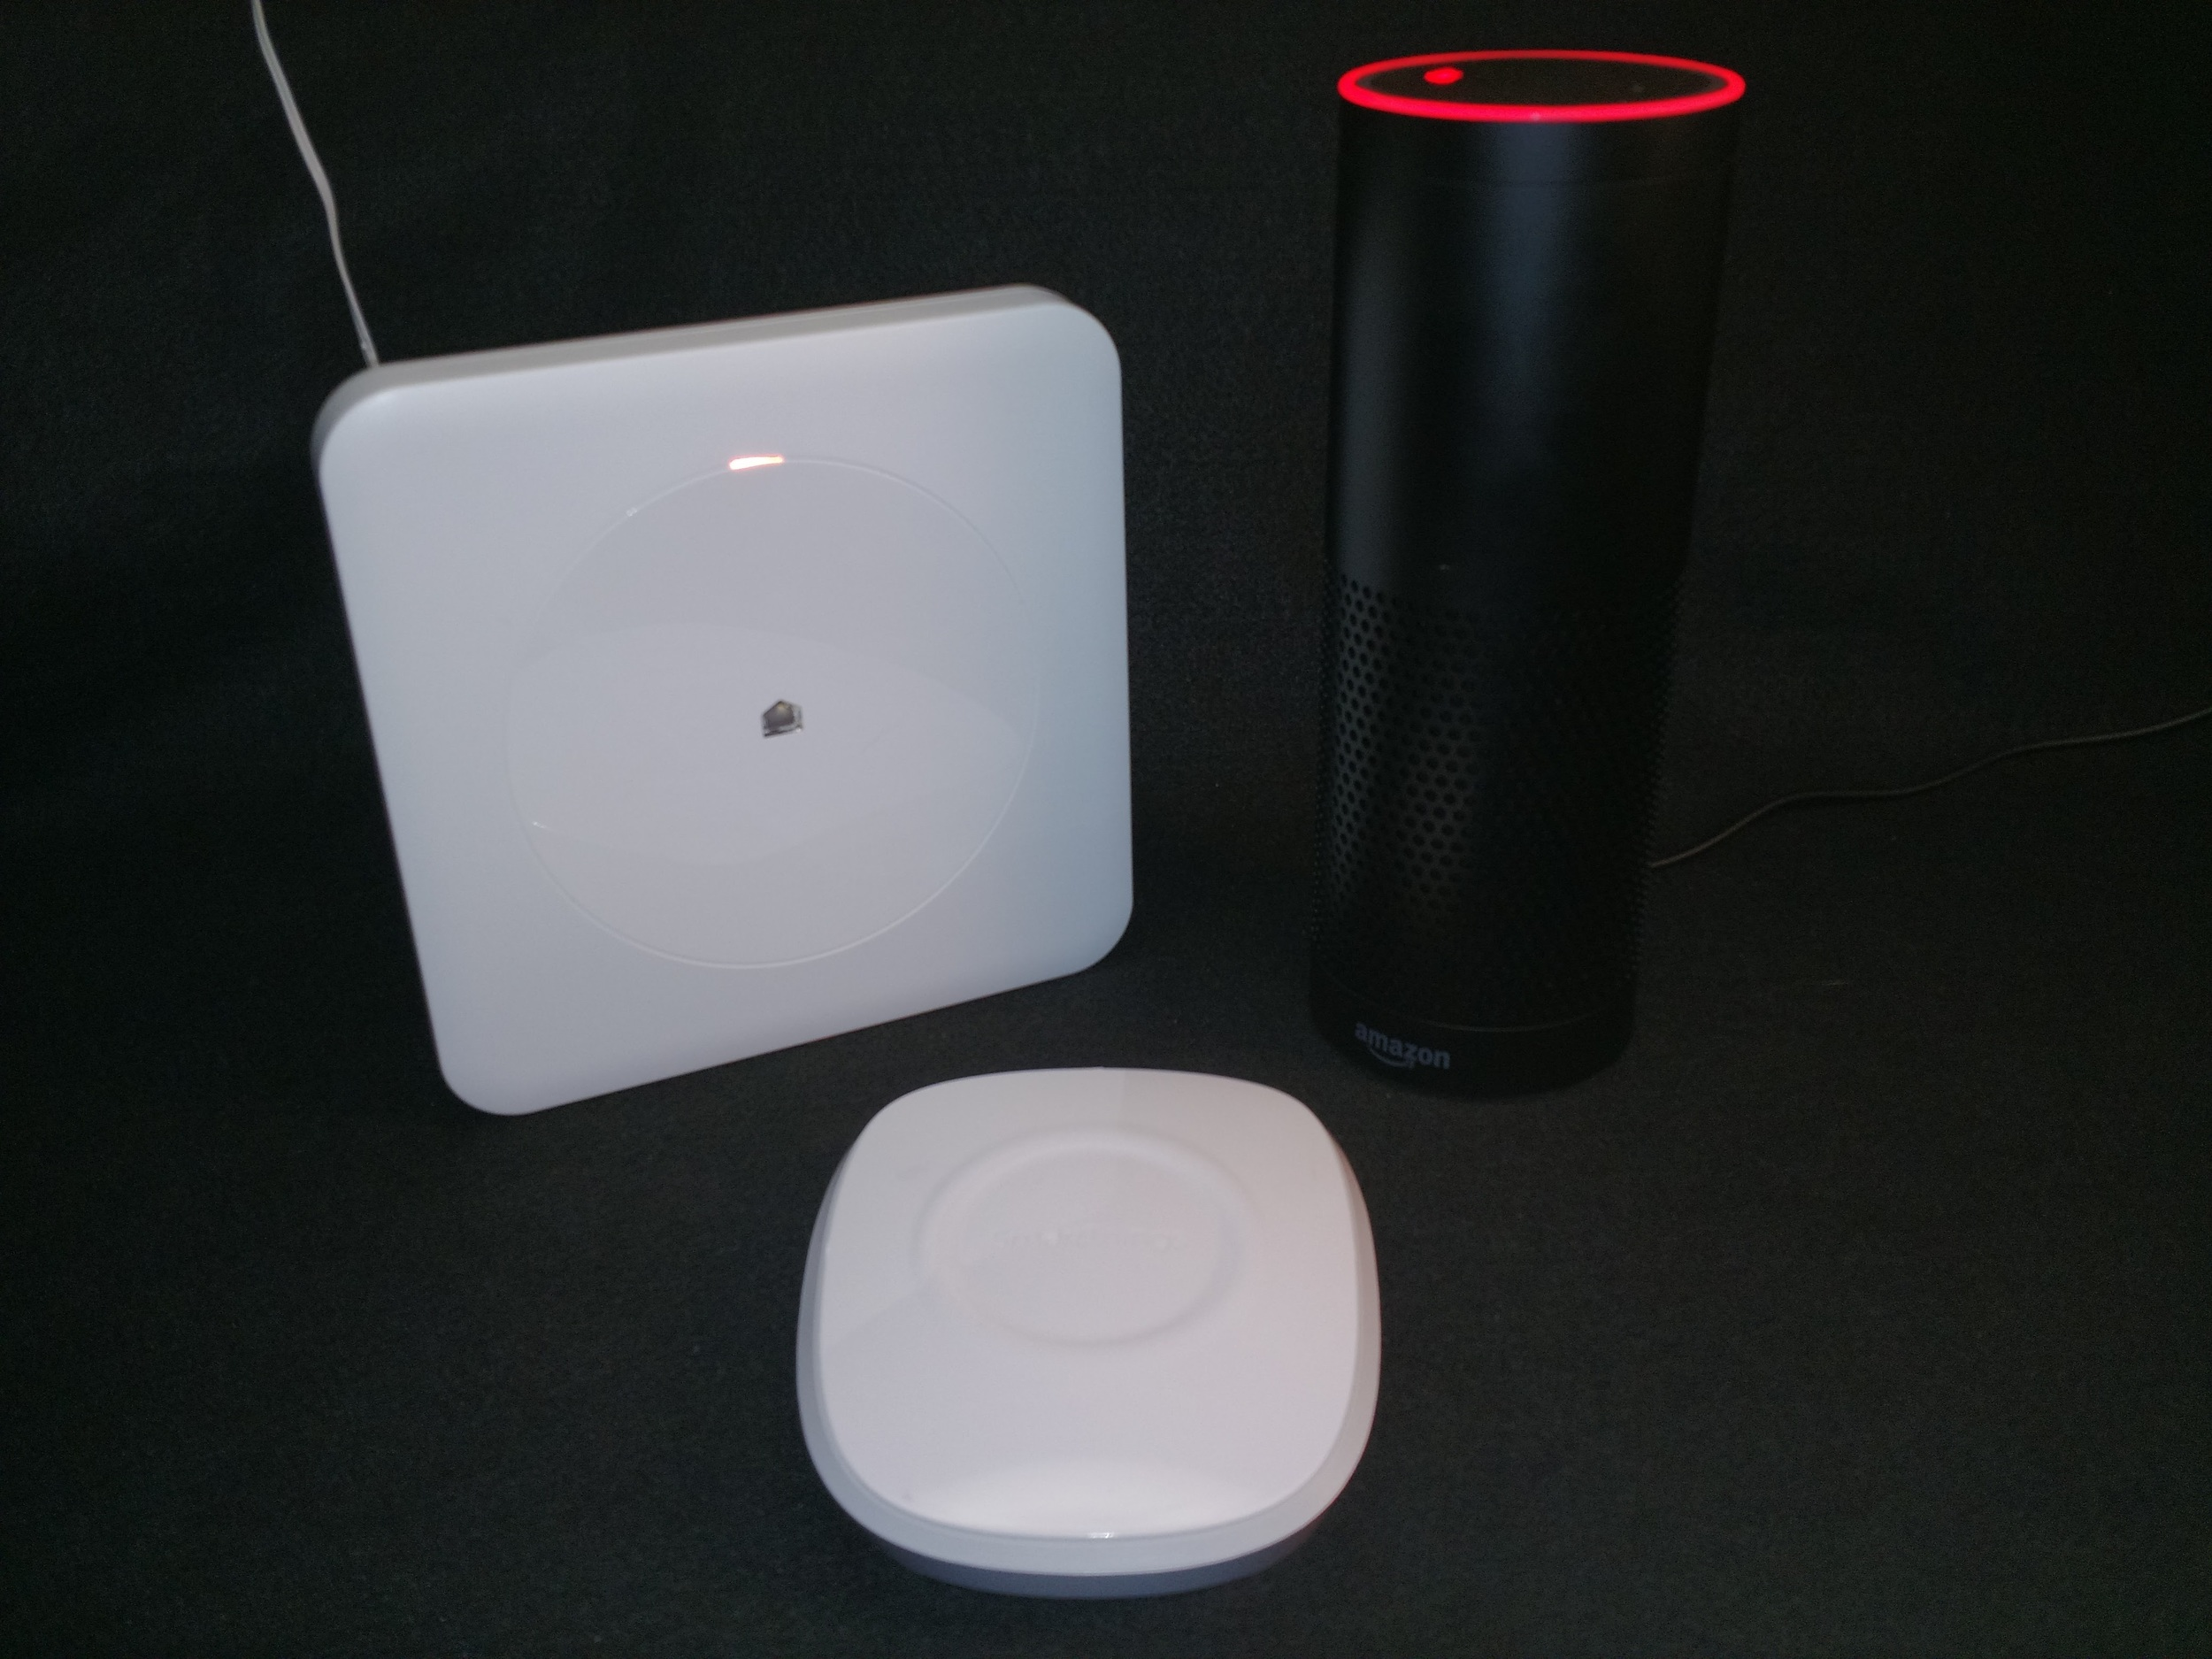 From left to right: The Wink Hub, The SmartThings Hub, Amazon Echo (muted to show the red ring)